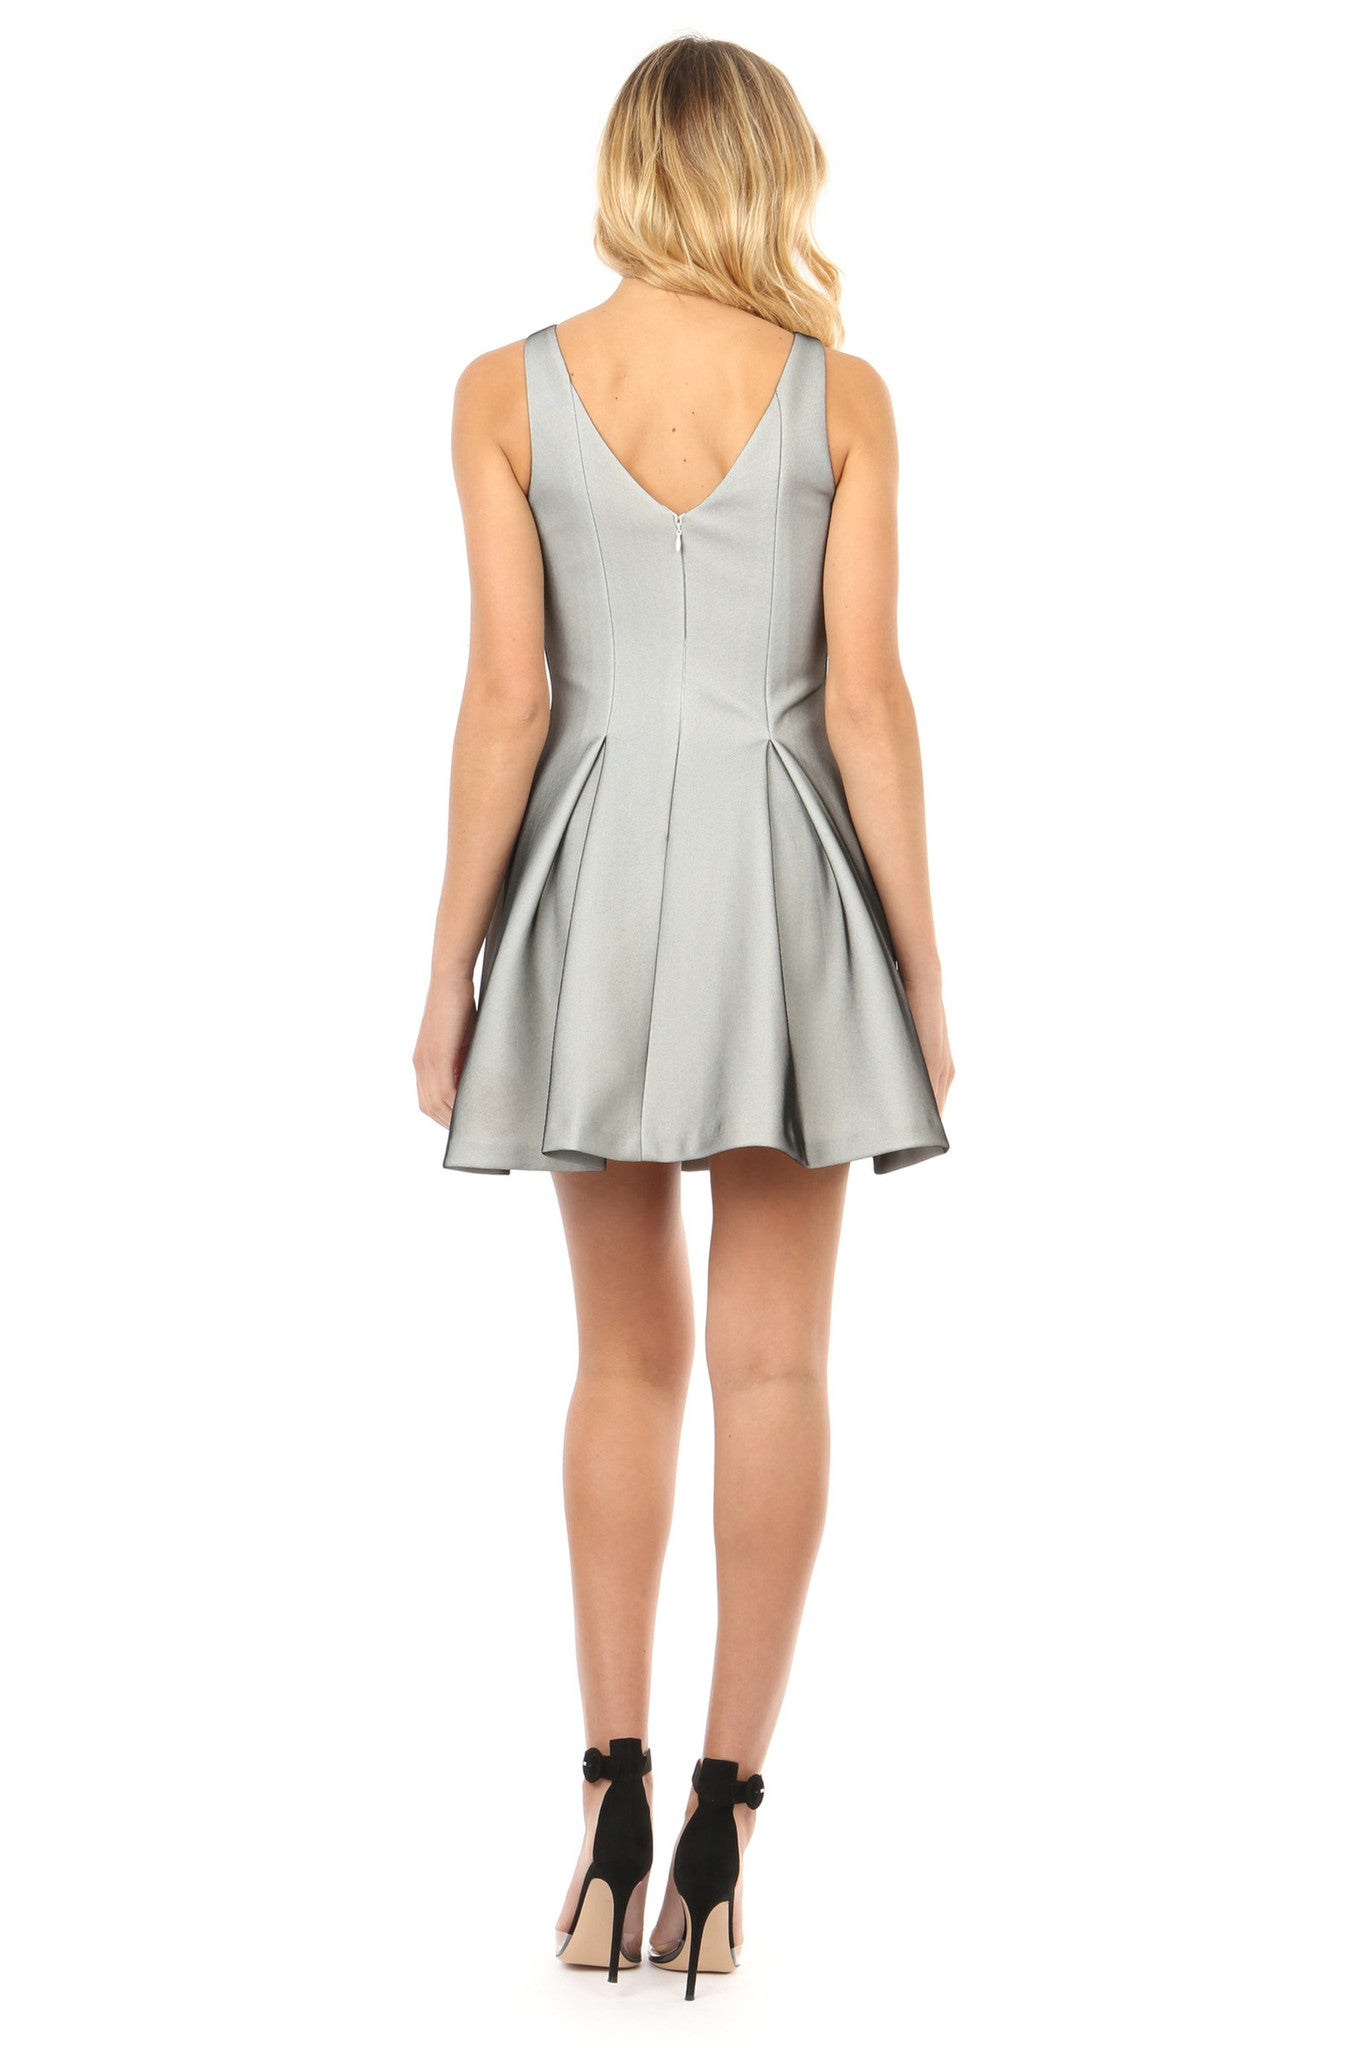 Jay Godfrey Silver  Fit and Flare Dress - Back View